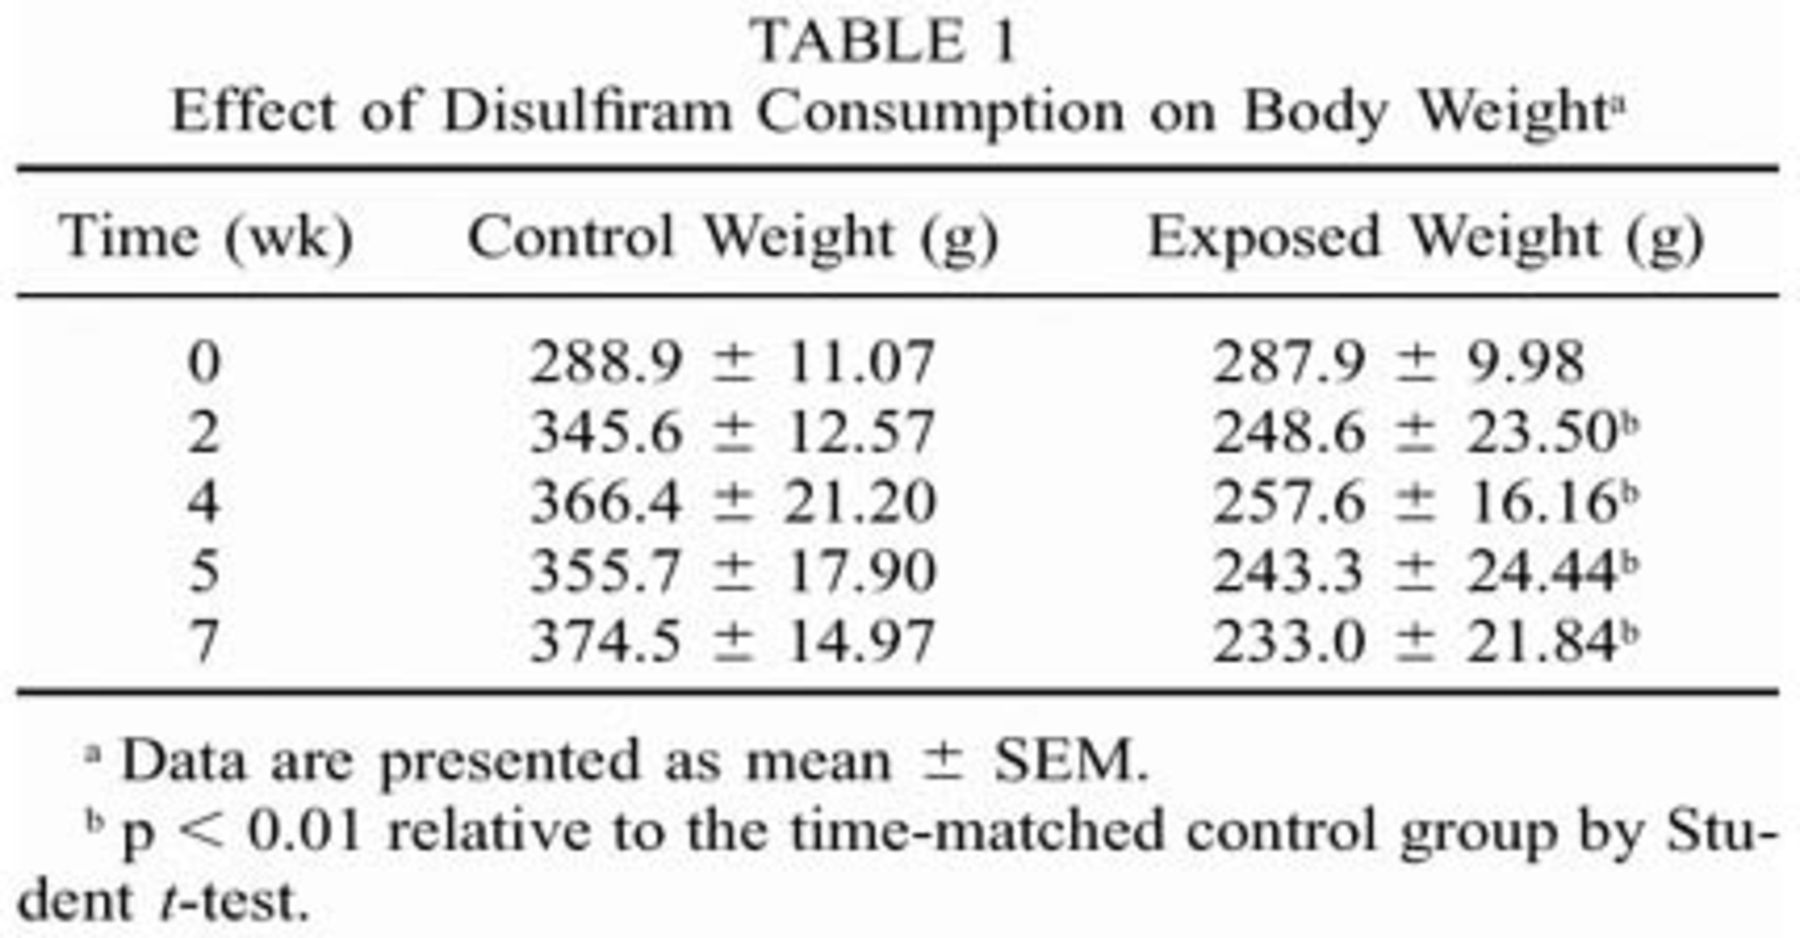 effect of disulfiram consumption on body weighta